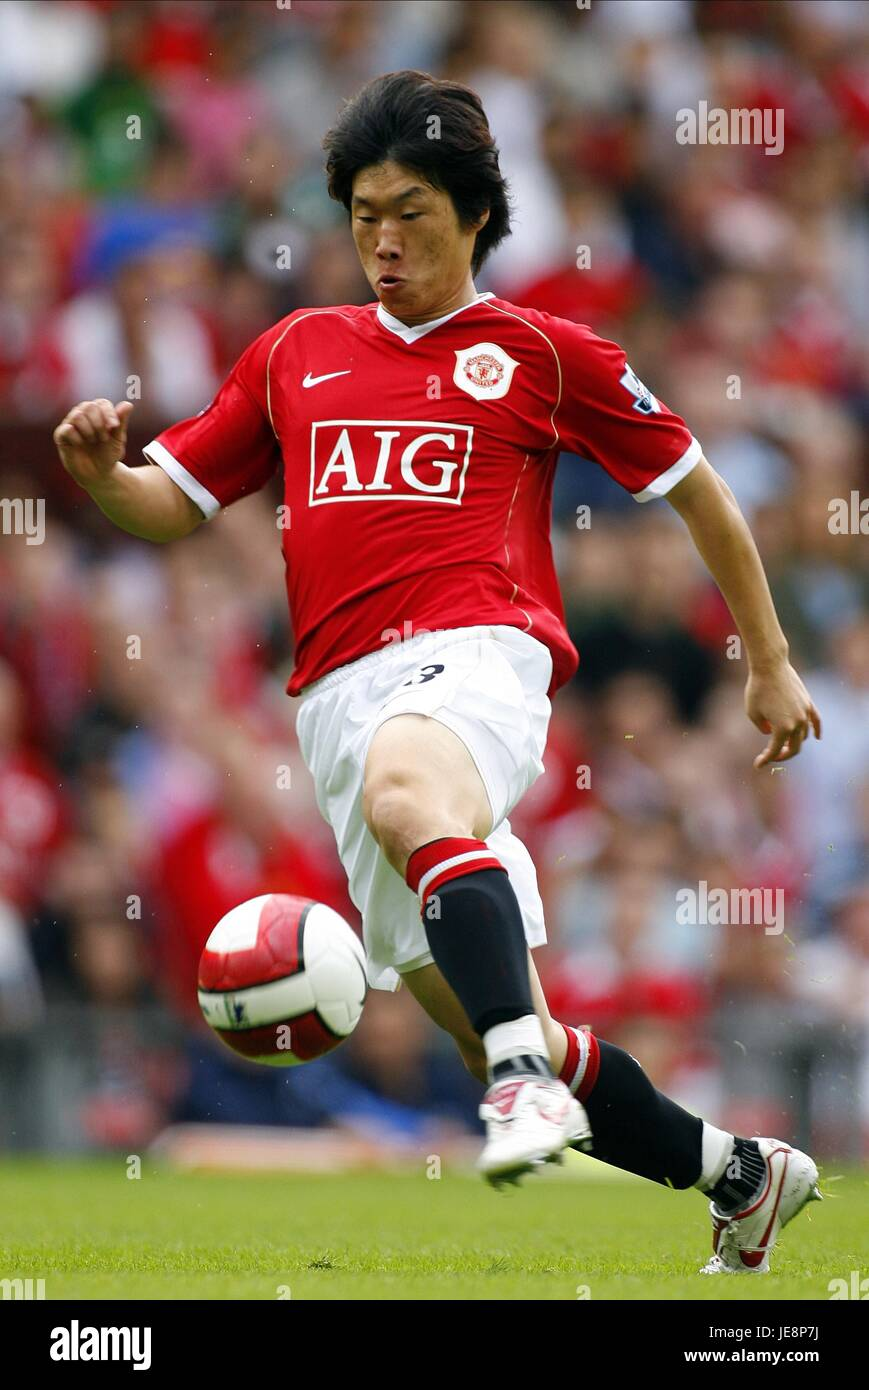 501a5646c JI-SUNG PARK MANCHESTER UNITED FC OLD TRAFFORD MANCHESTER ENGLAND 12 August  2006